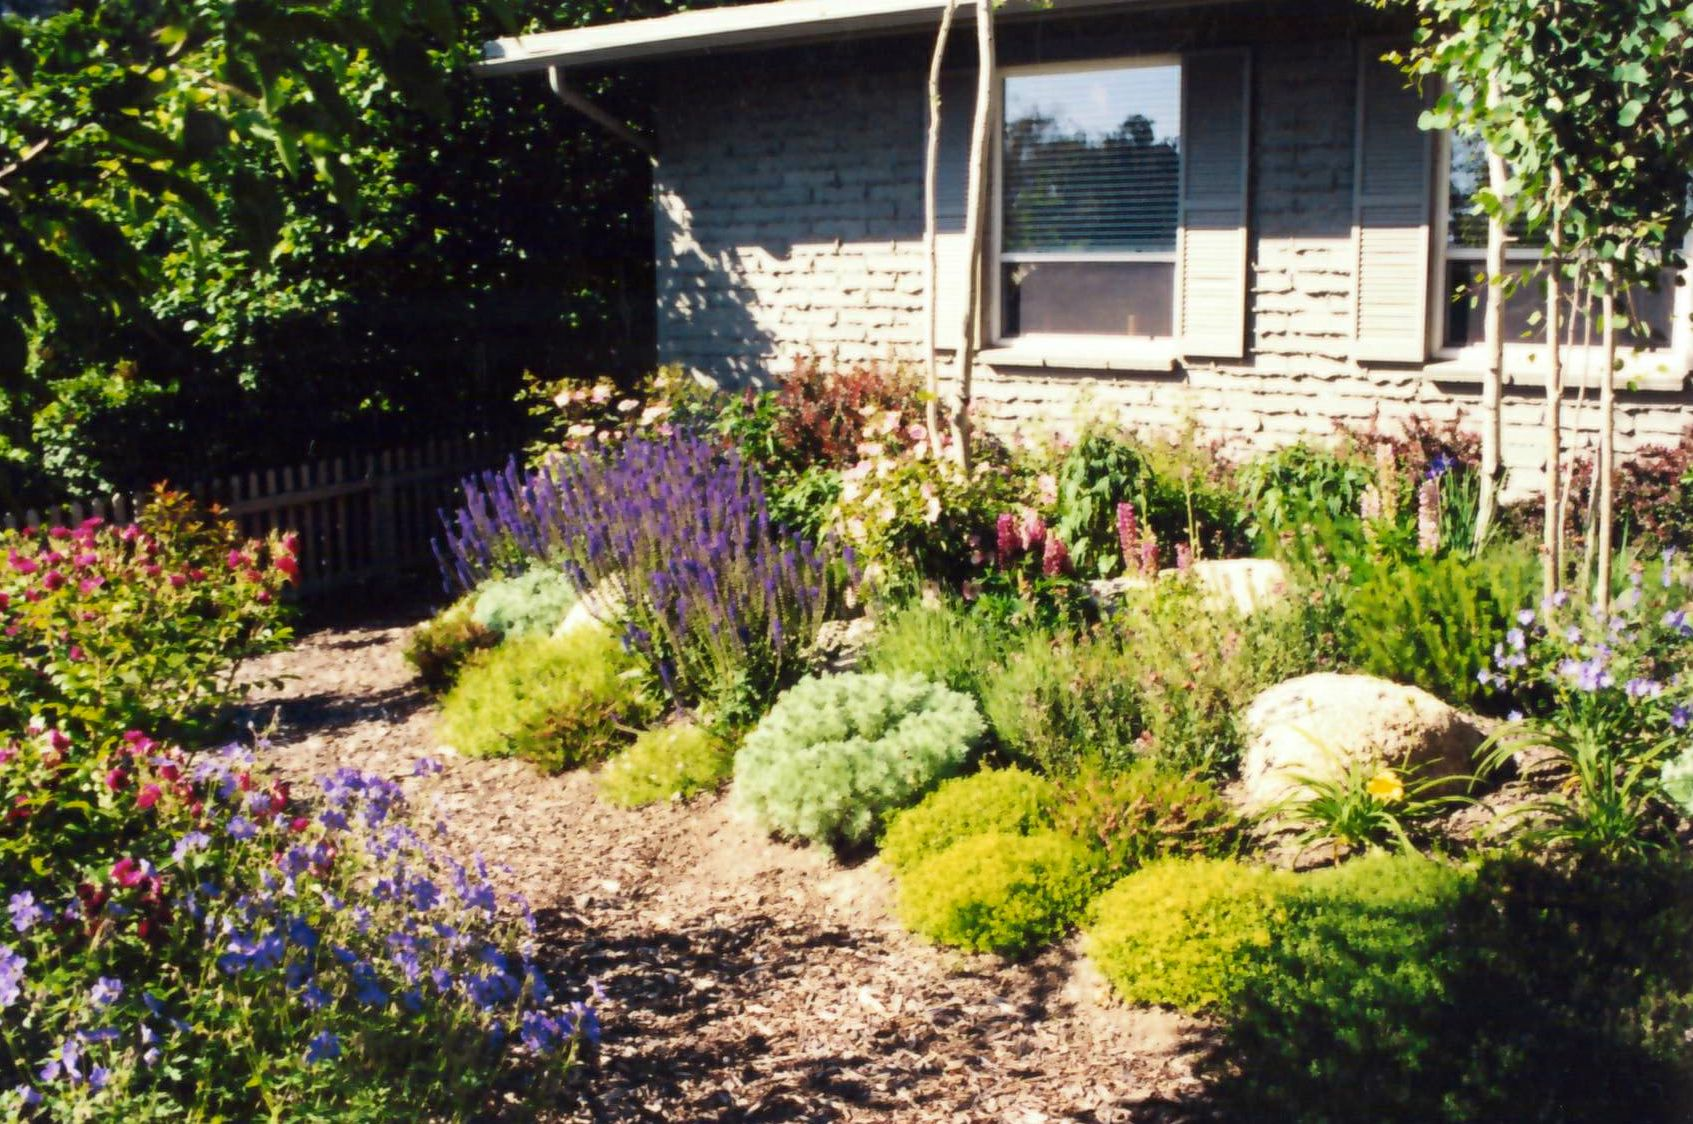 Gardening Landscaping Ideas Style Brenda Broughton Garden Design Simple Cottage Style Low Water Use .